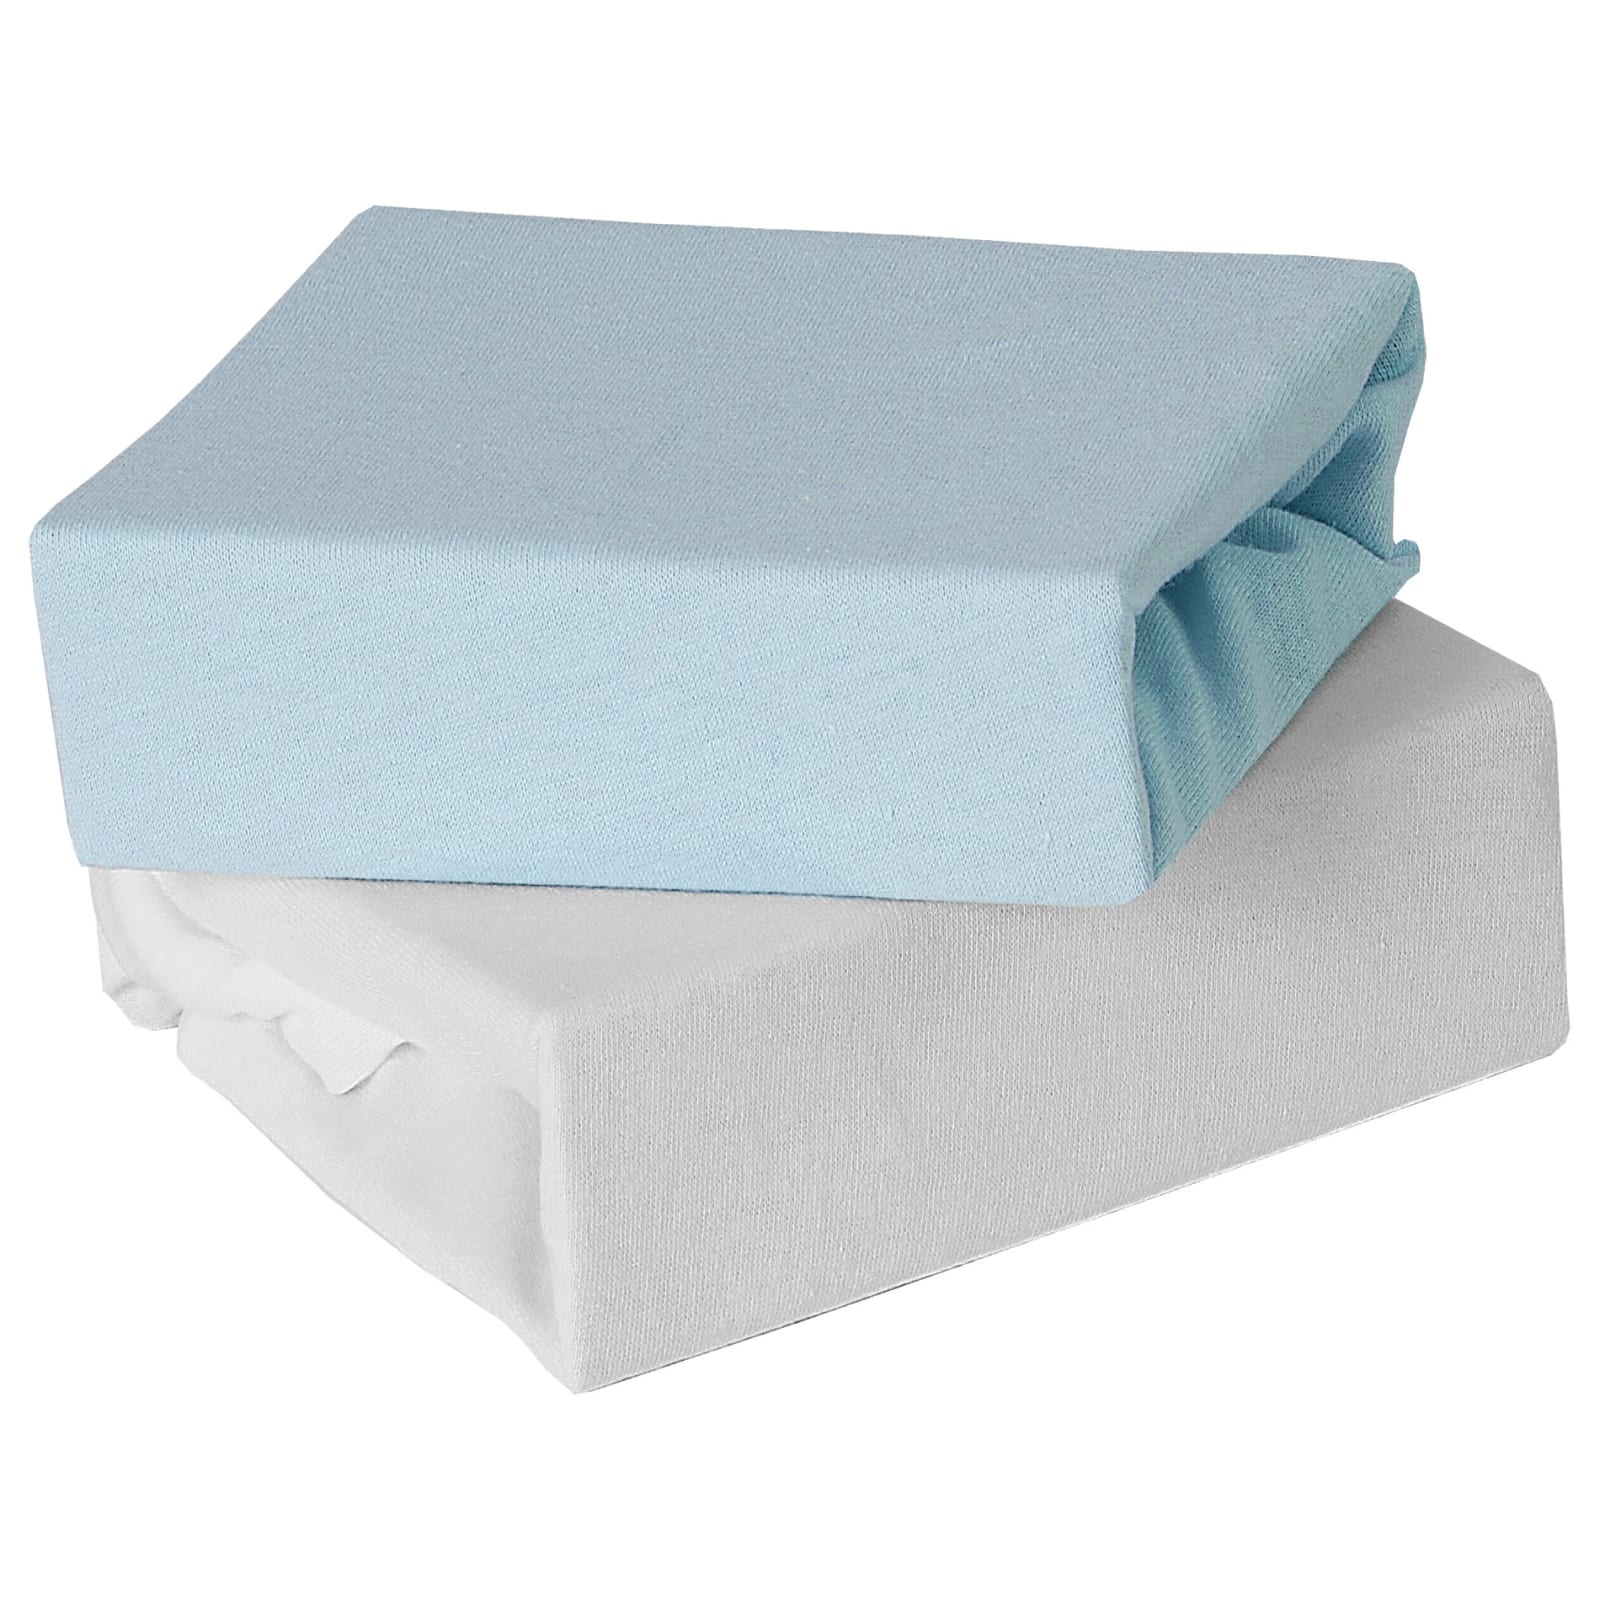 2 Pack Cot Sheets – 60 x 120cm product image